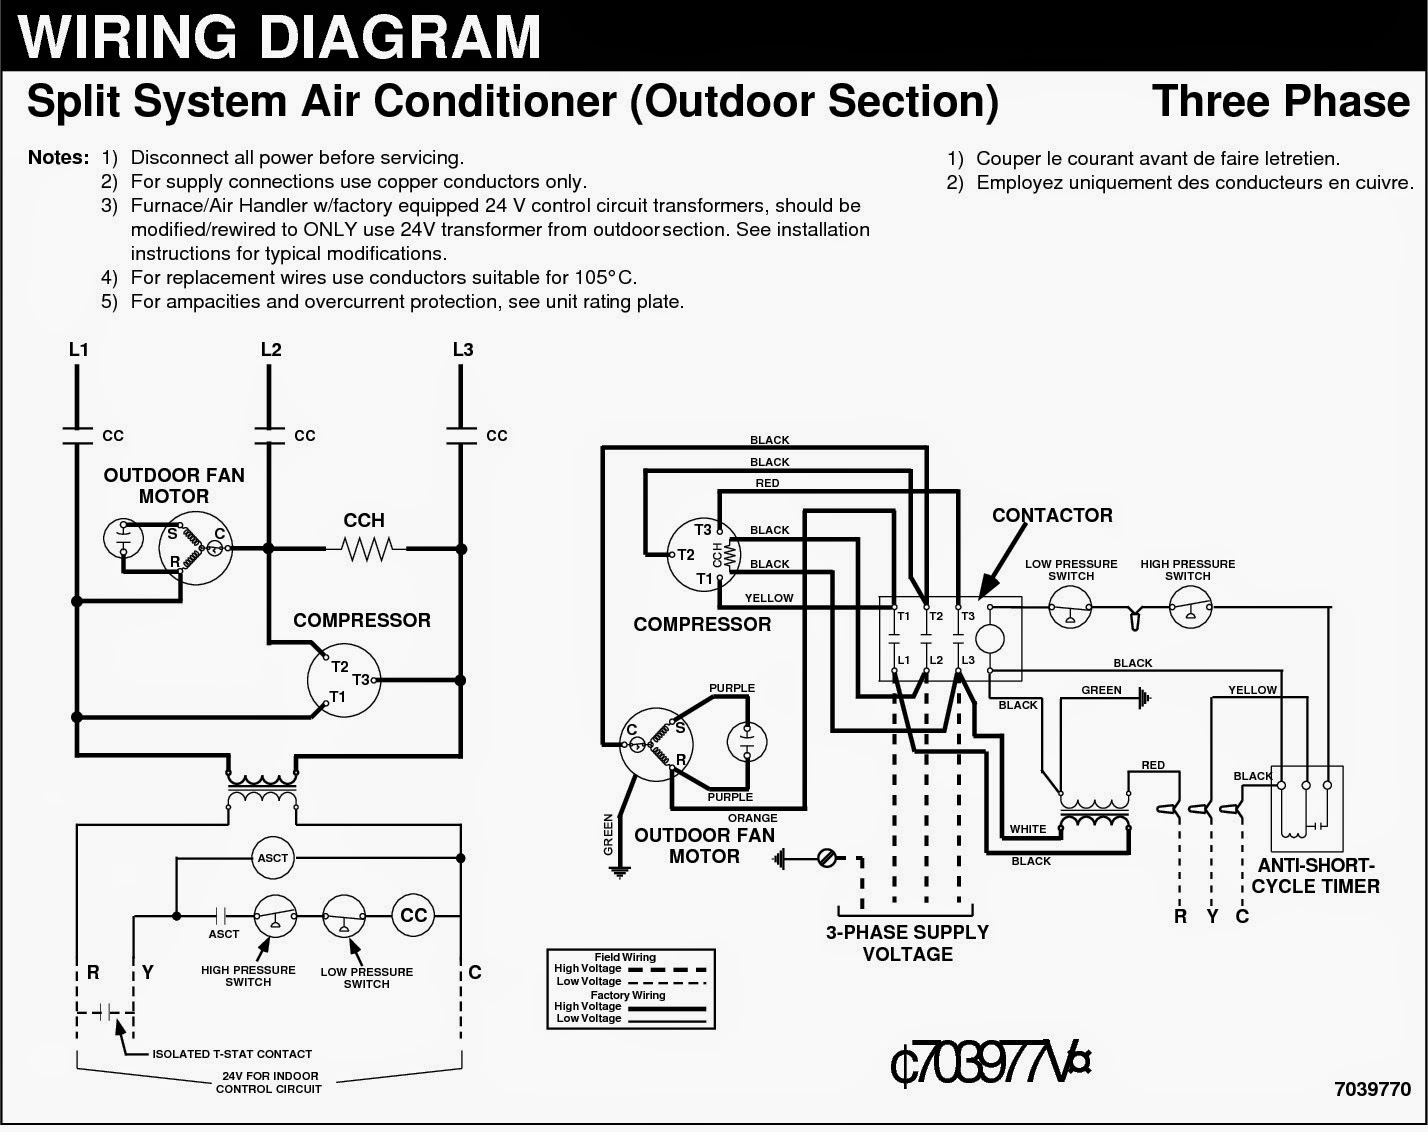 electrical wiring diagrams for air conditioning systems part two on 3 phase wiring diagrams